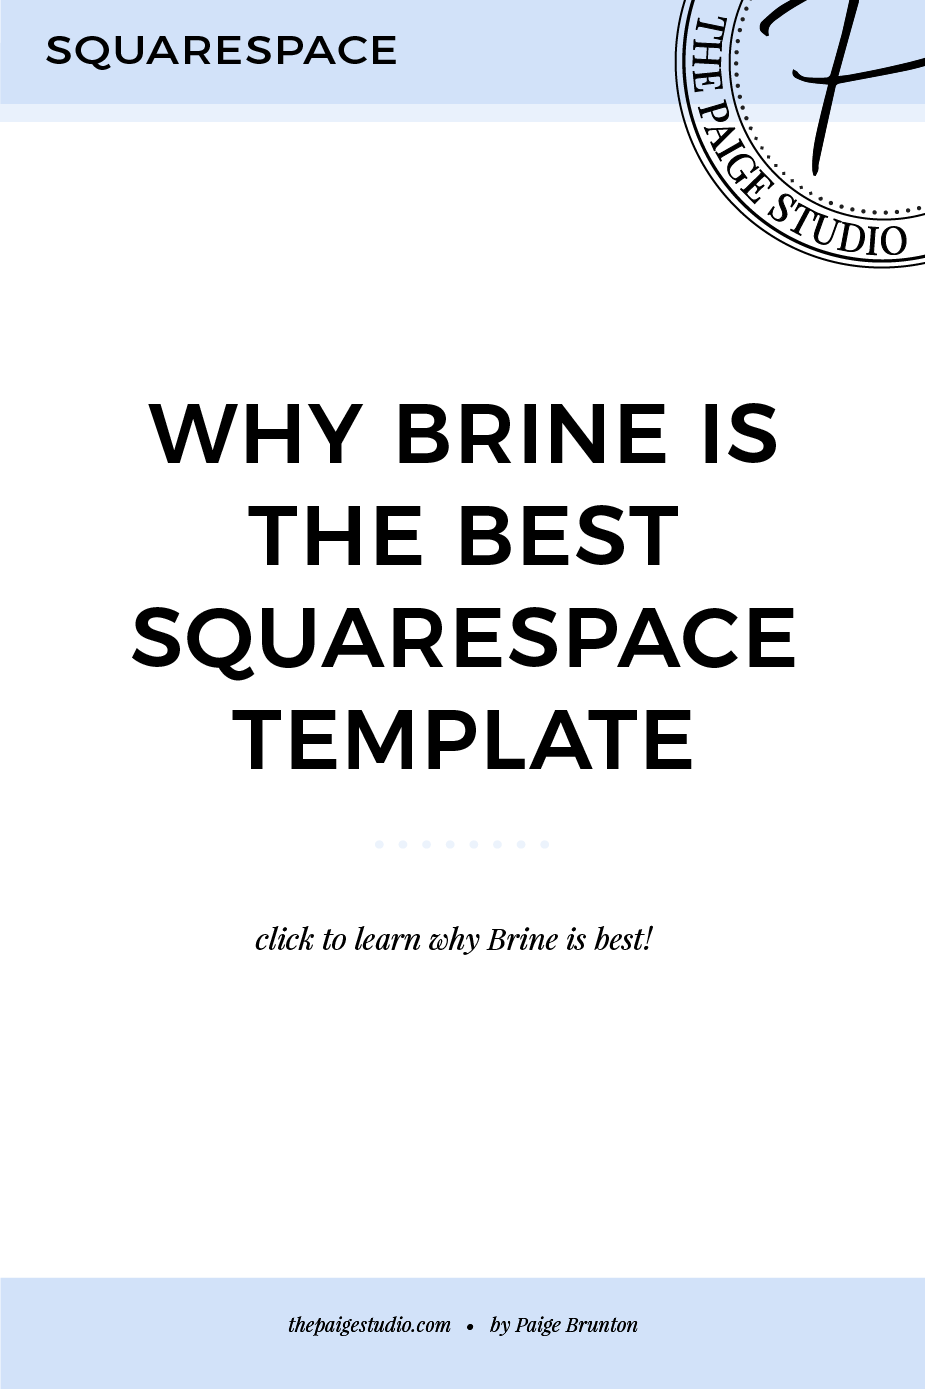 What Is The Best Squarespace Template Brine Here S Why The